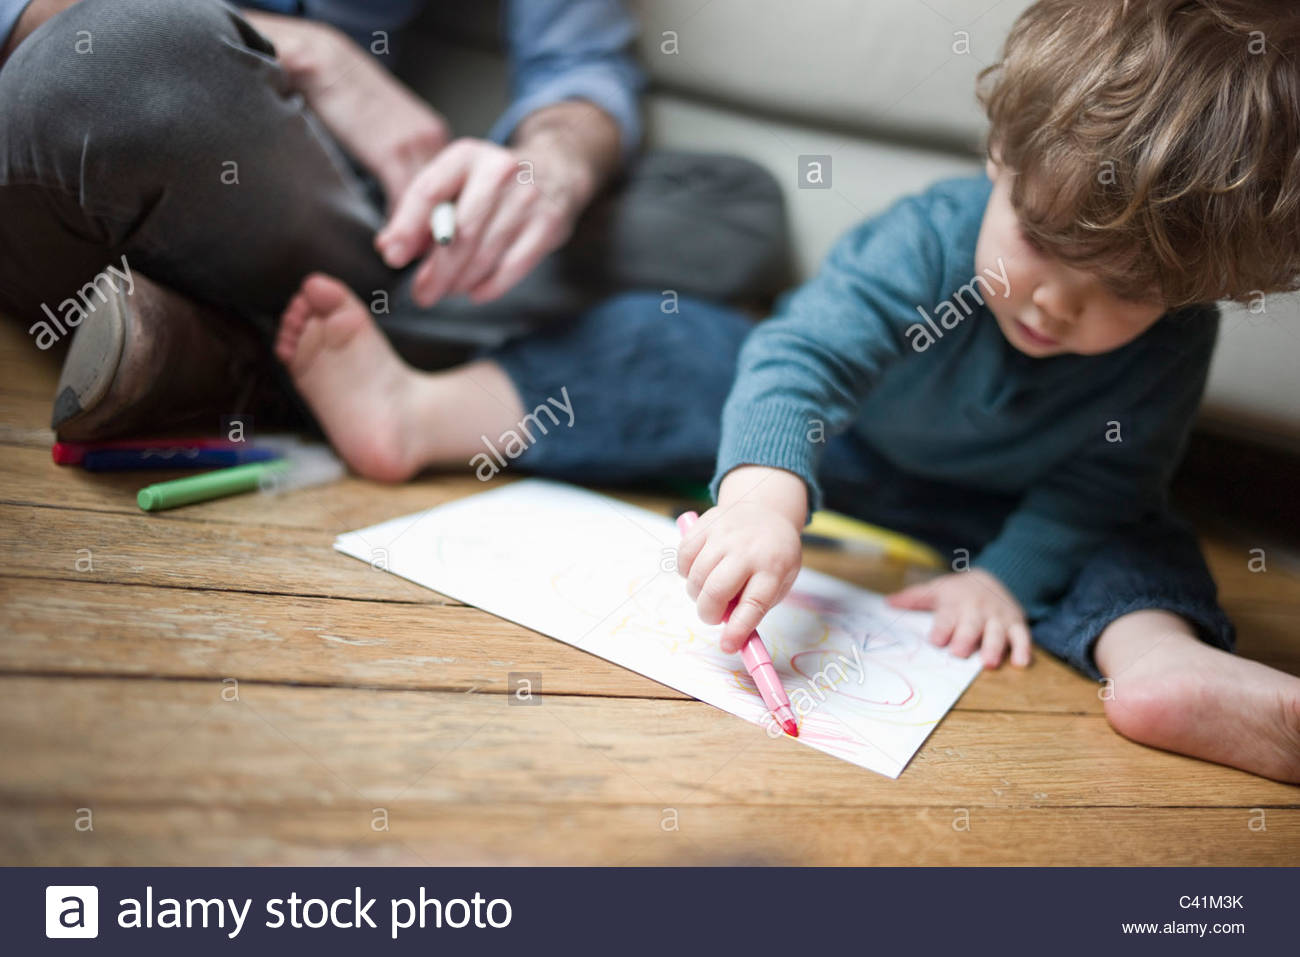 1300x957 Toddler Boy Sitting On Floor With Parent, Drawing On Paper Stock